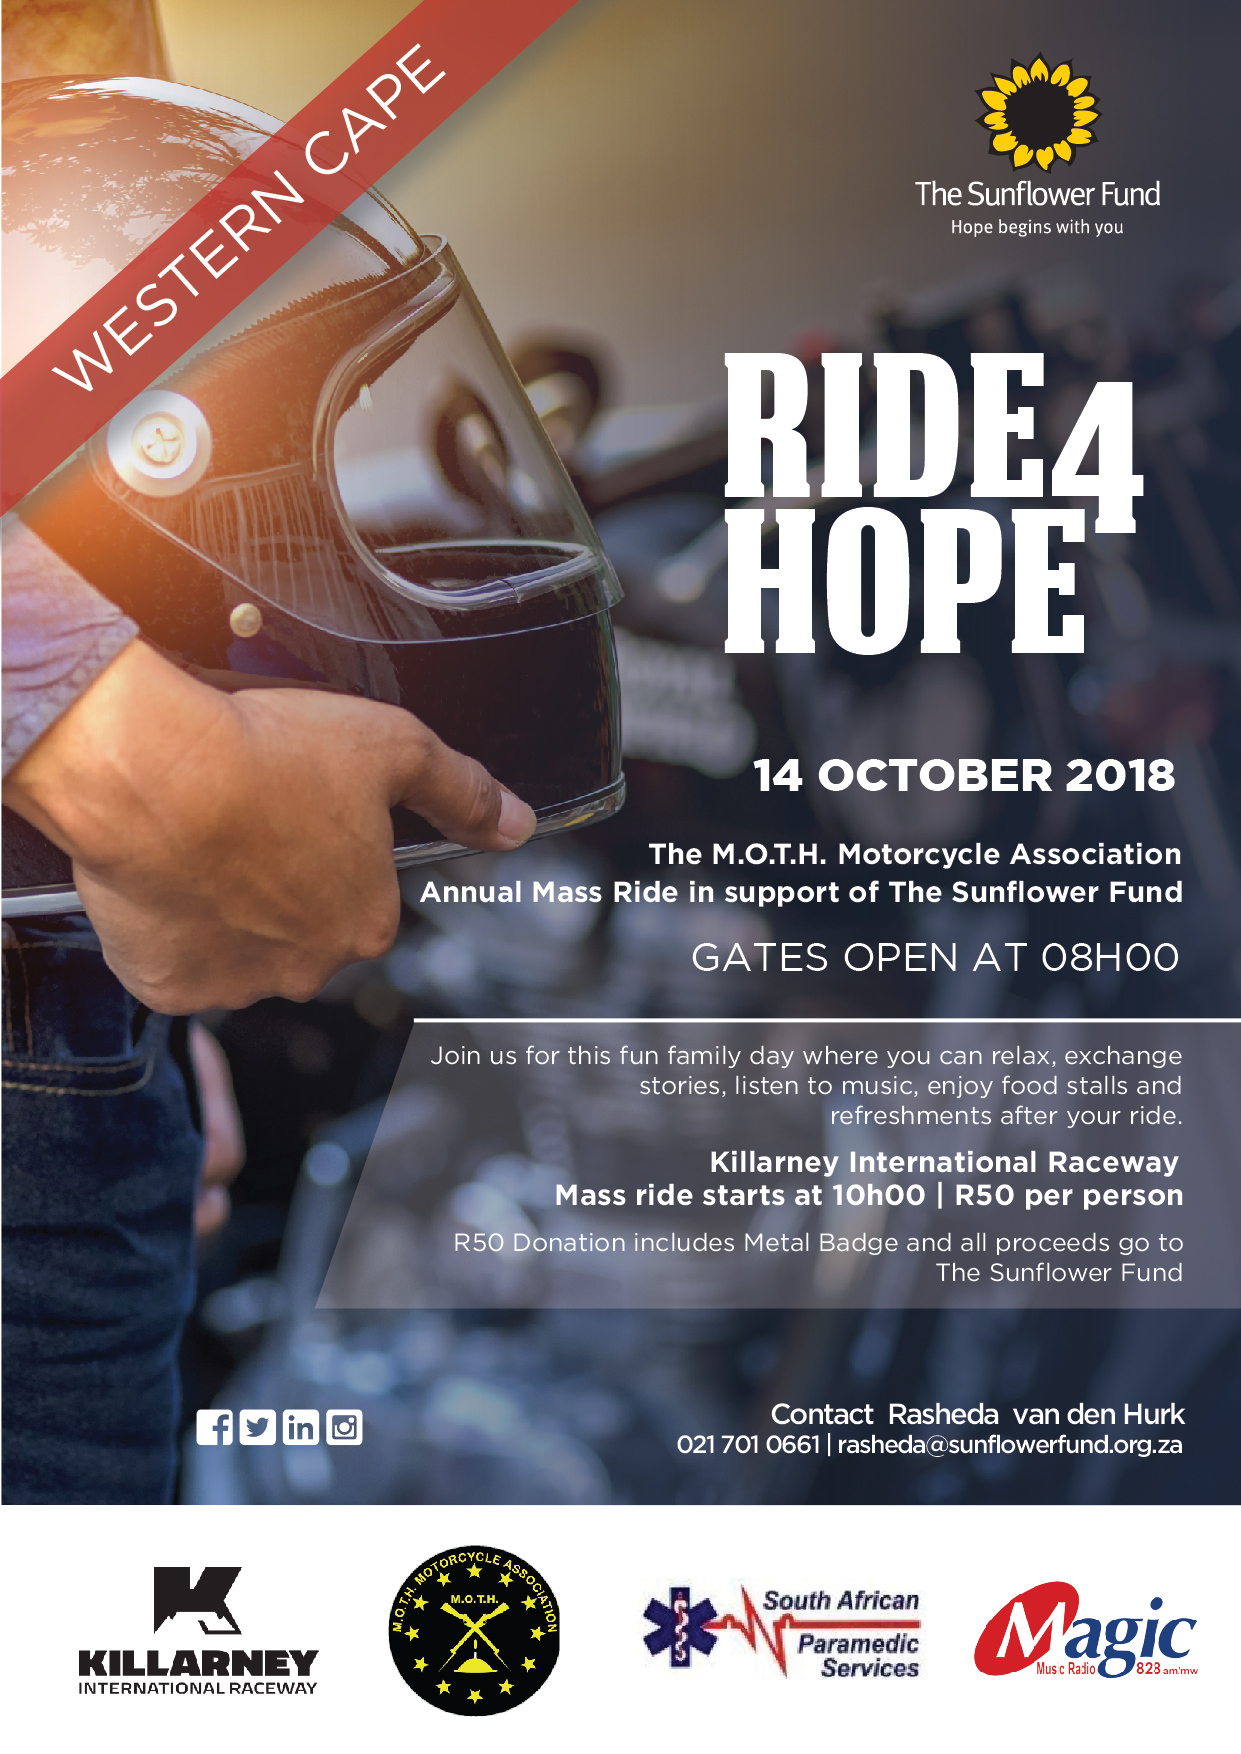 ride-4-hope-wc-_invitation-01